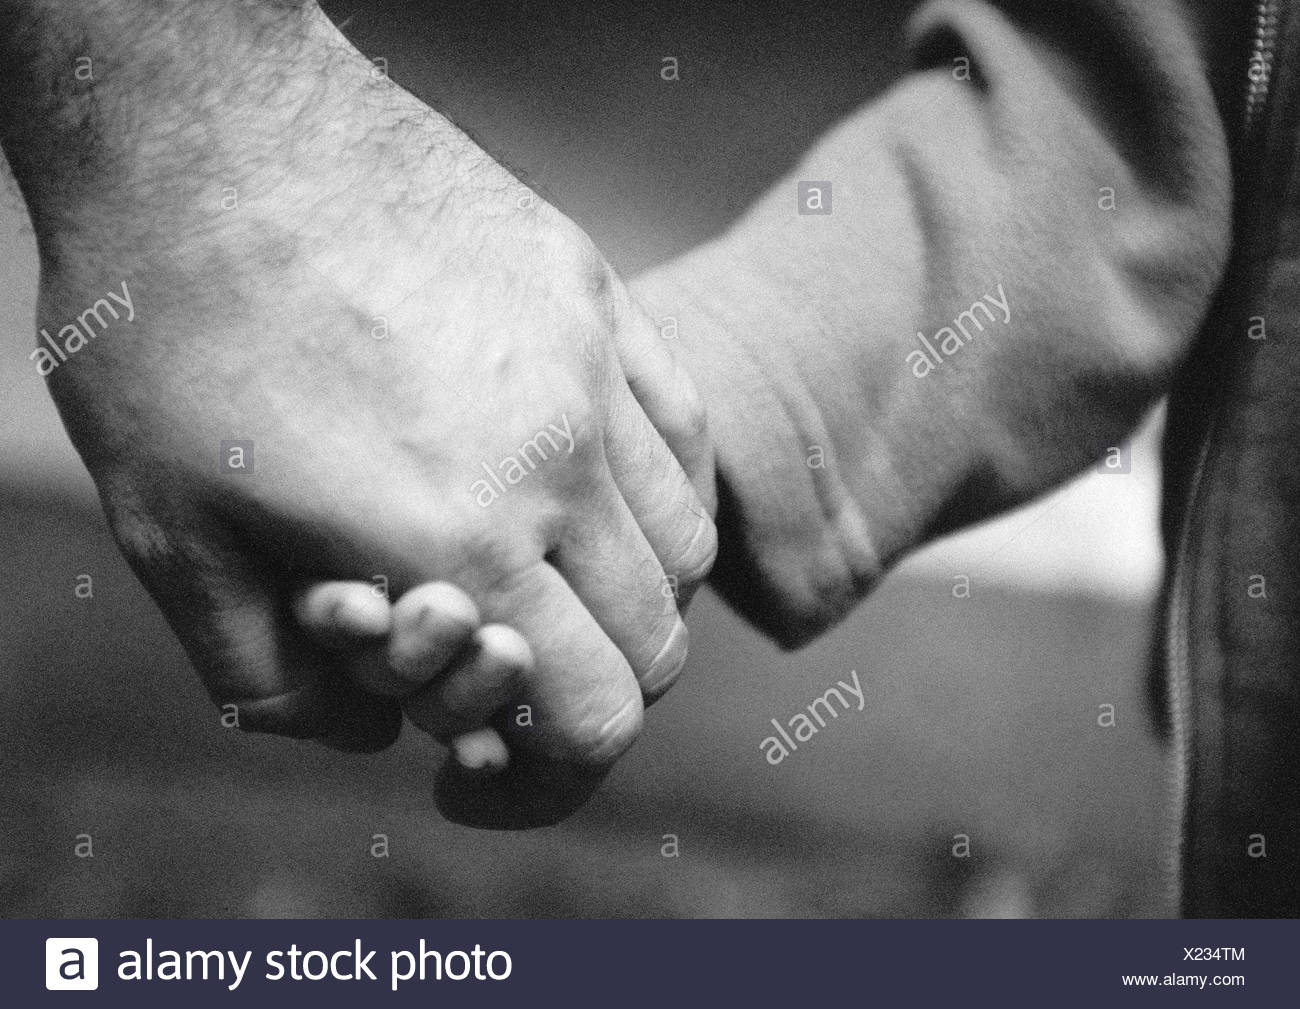 Adult's hand holding child's hand, close-up, b&w - Stock Image